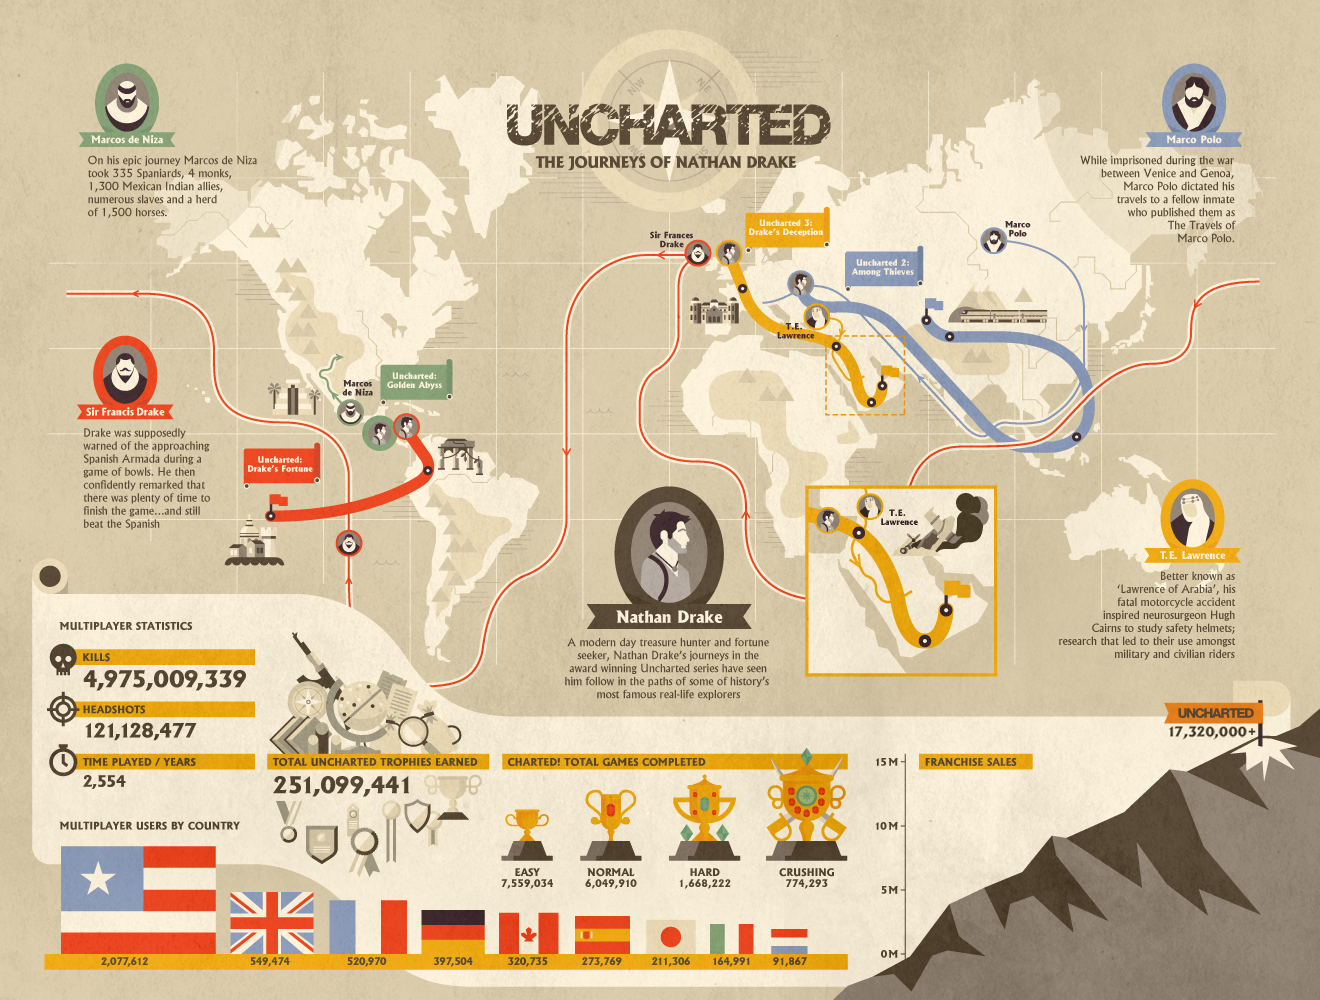 file_2694_UNCHARTED_INFOGRAPHIC